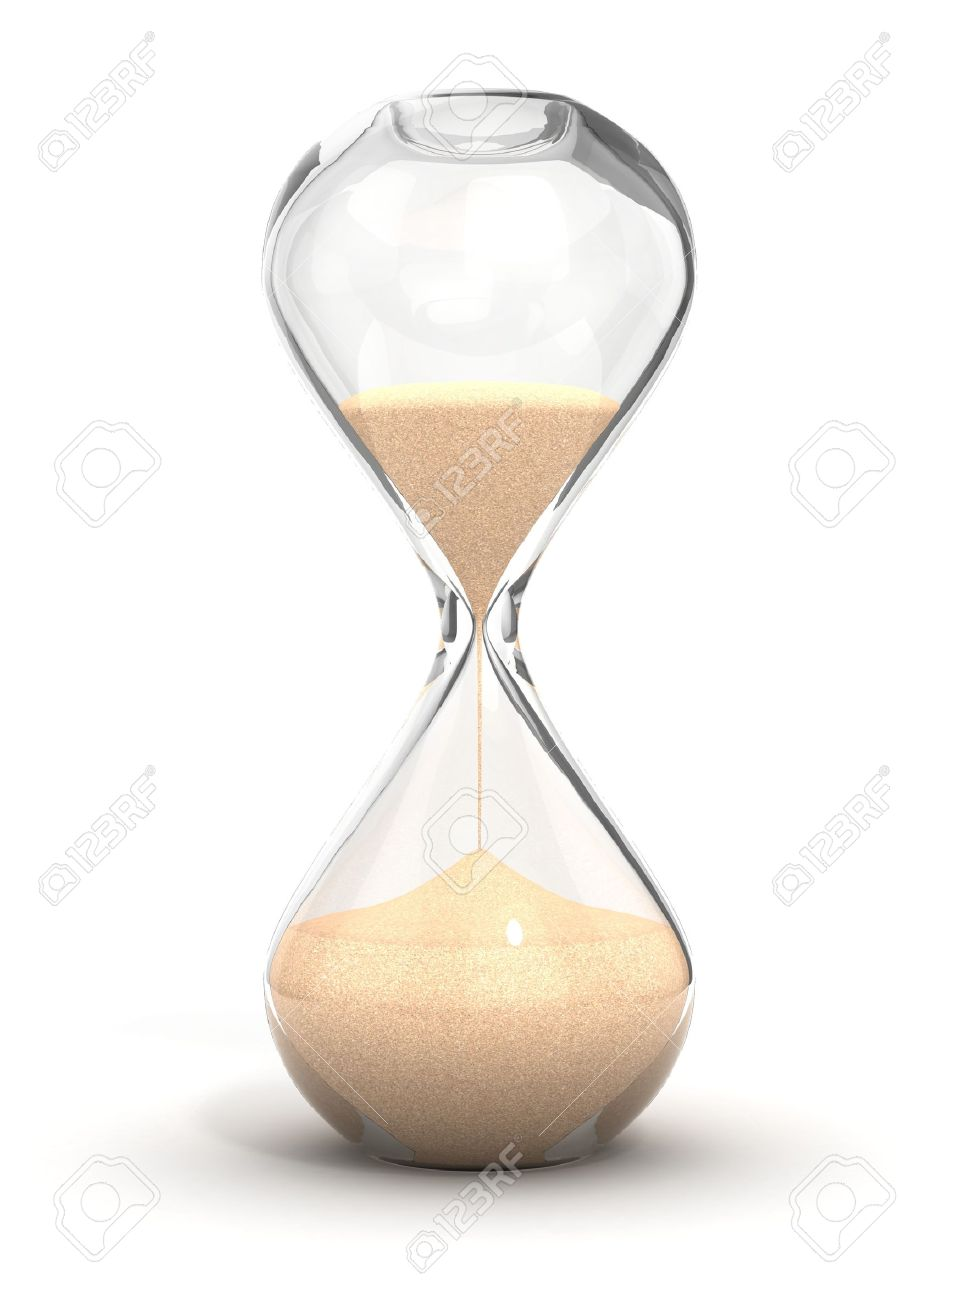 hourglass, sandglass, sand timer, sand clock isolated on the white background 3d illustration Stock Illustration - 12557644